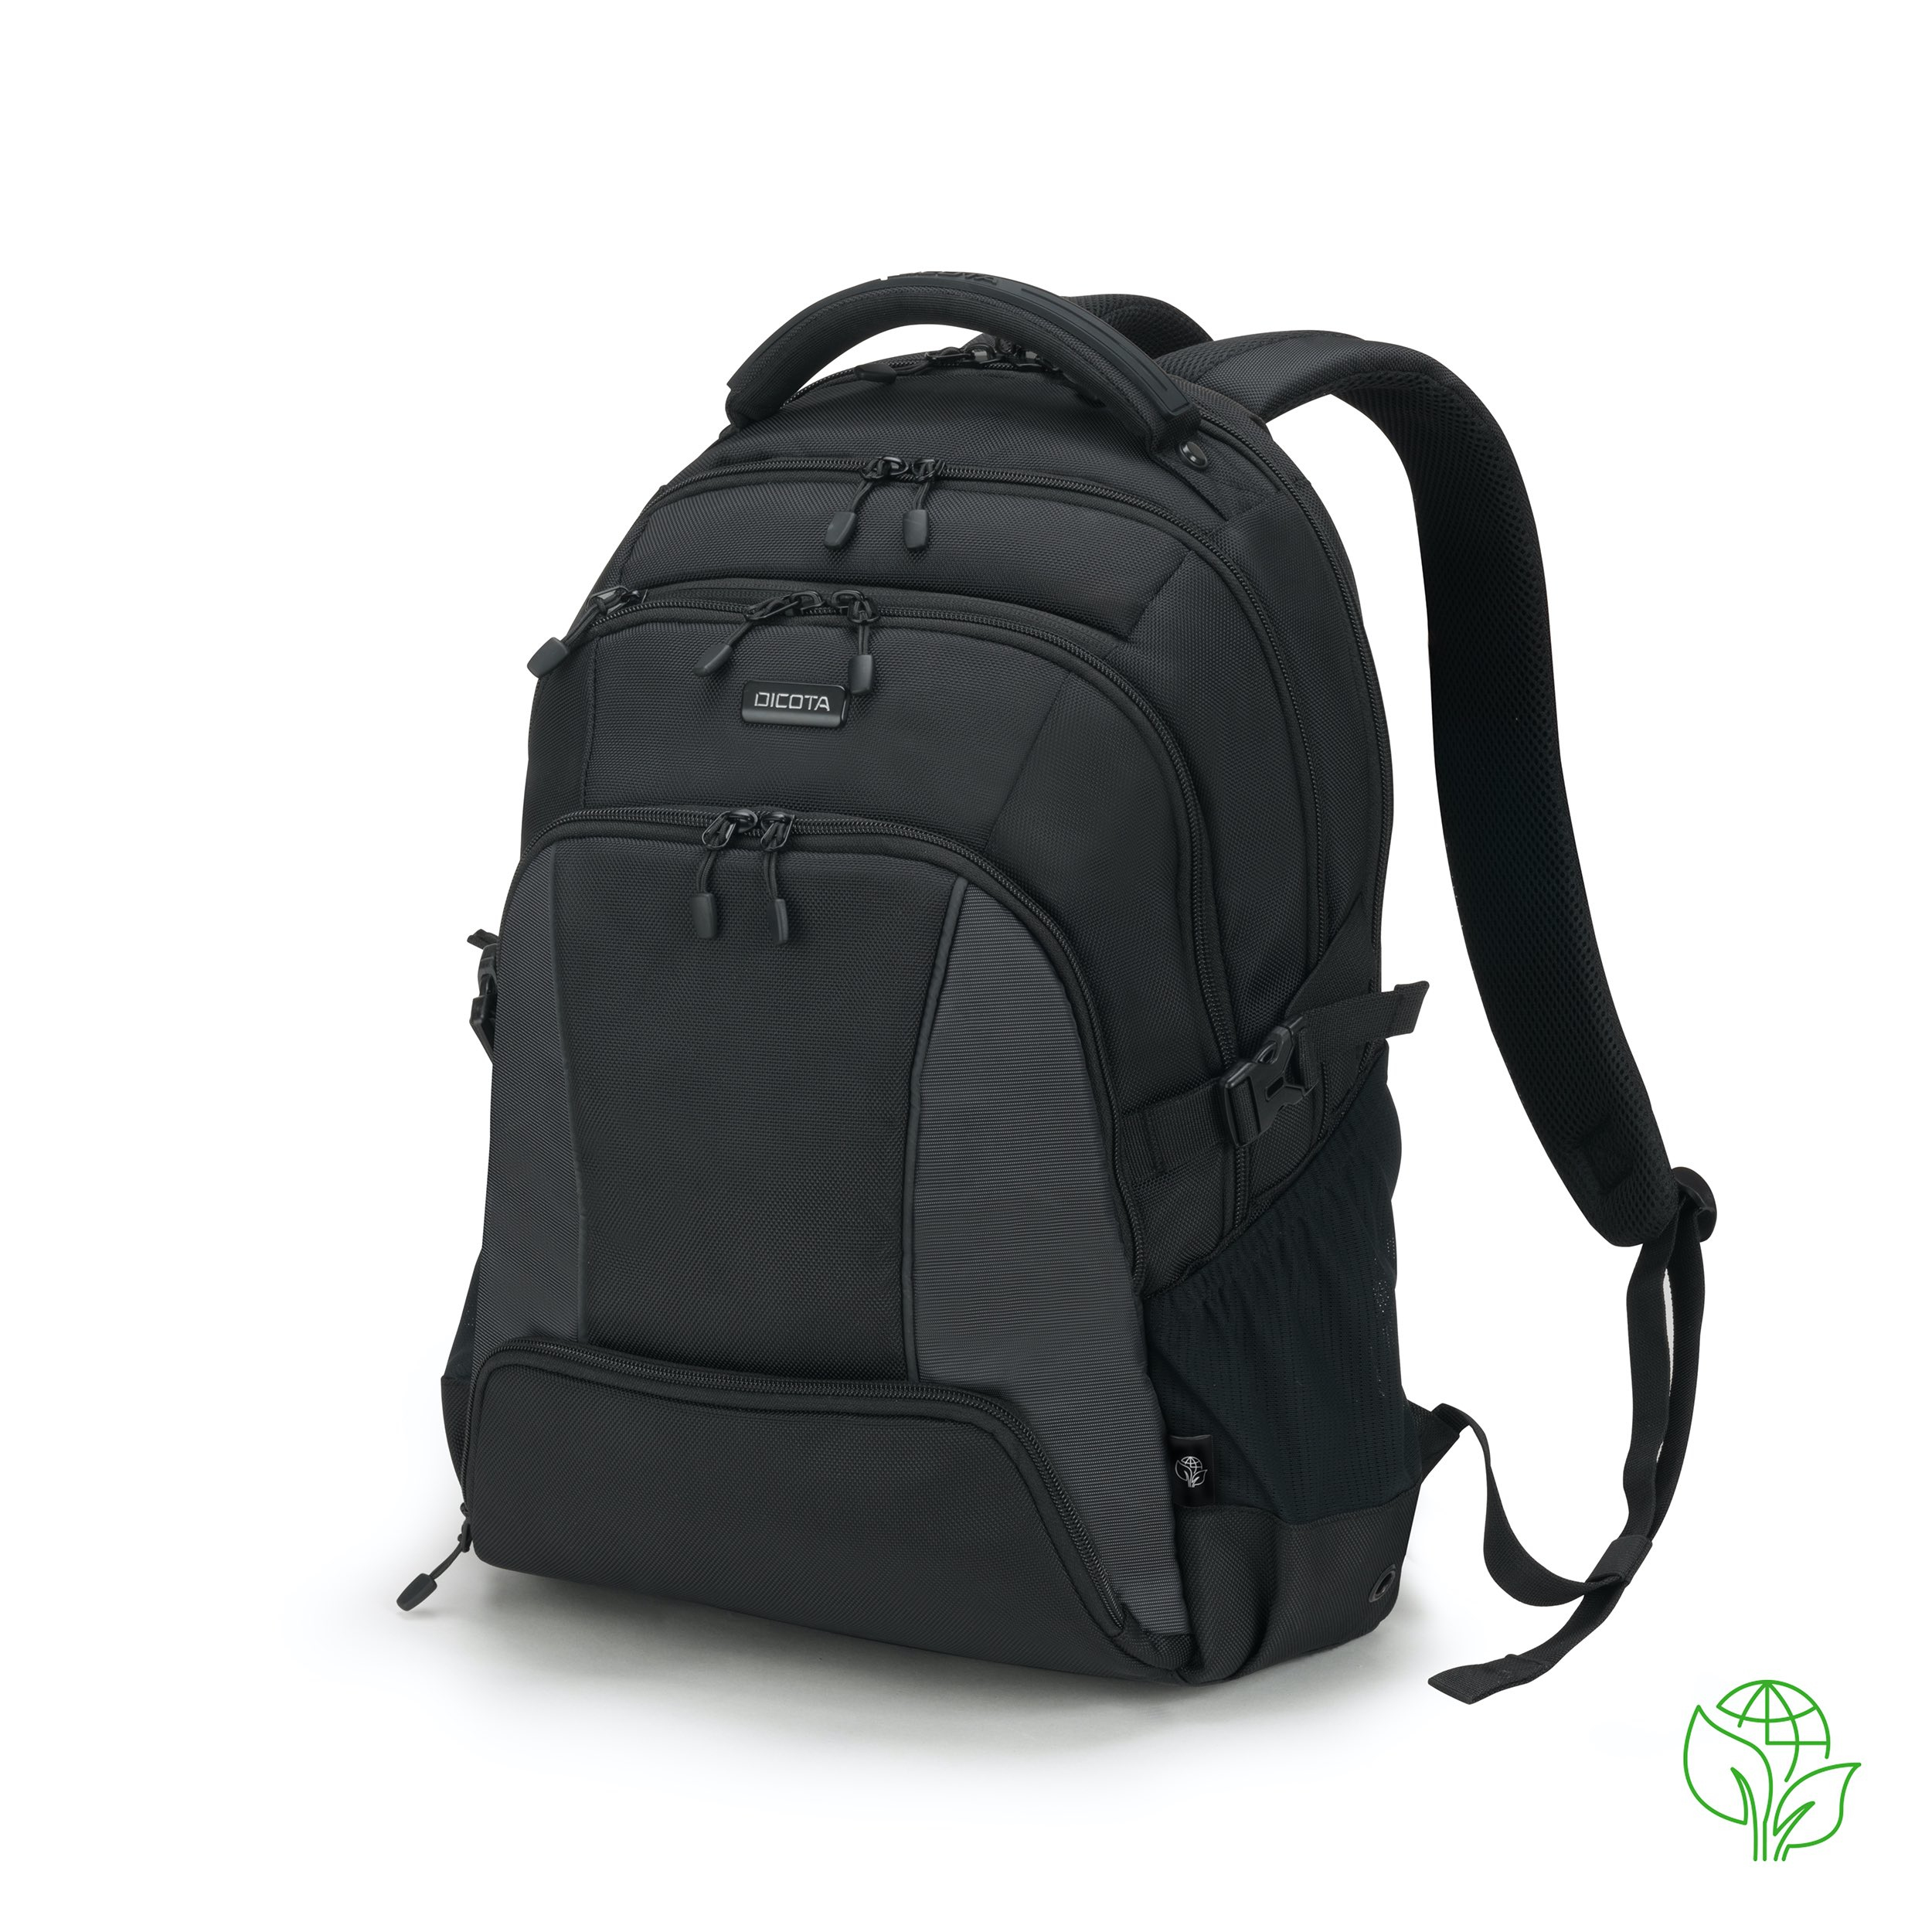 Dicota - Consignment             Eco Backpack Seeker 15-17.3         Black                               D31814